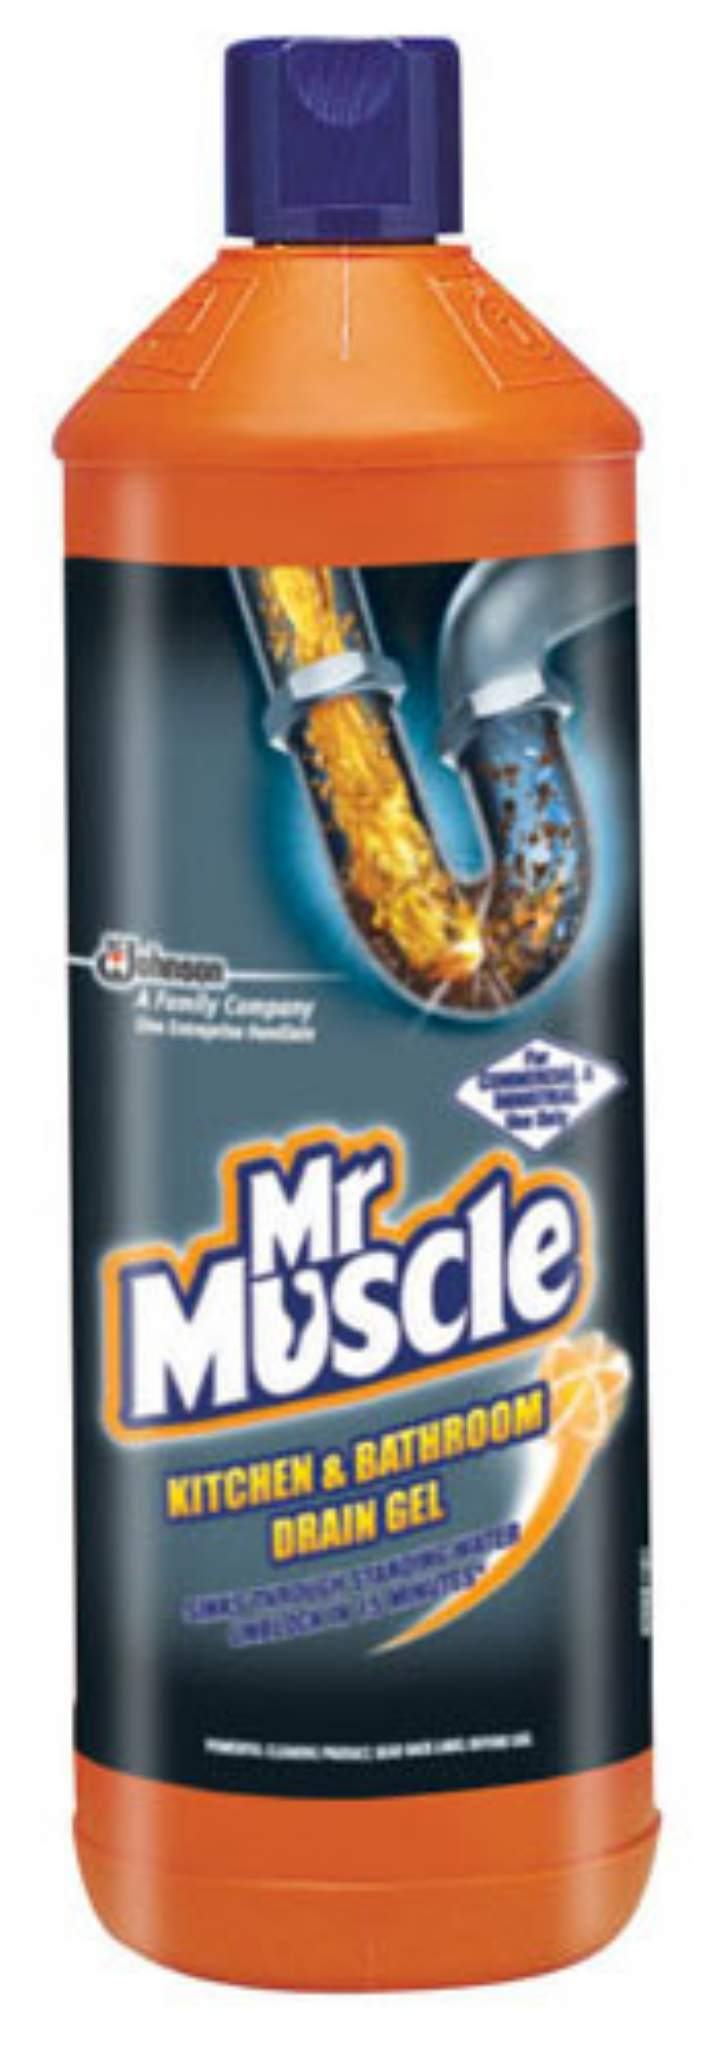 MR MUSCLE DRAIN CLEANER GEL - 1ltr